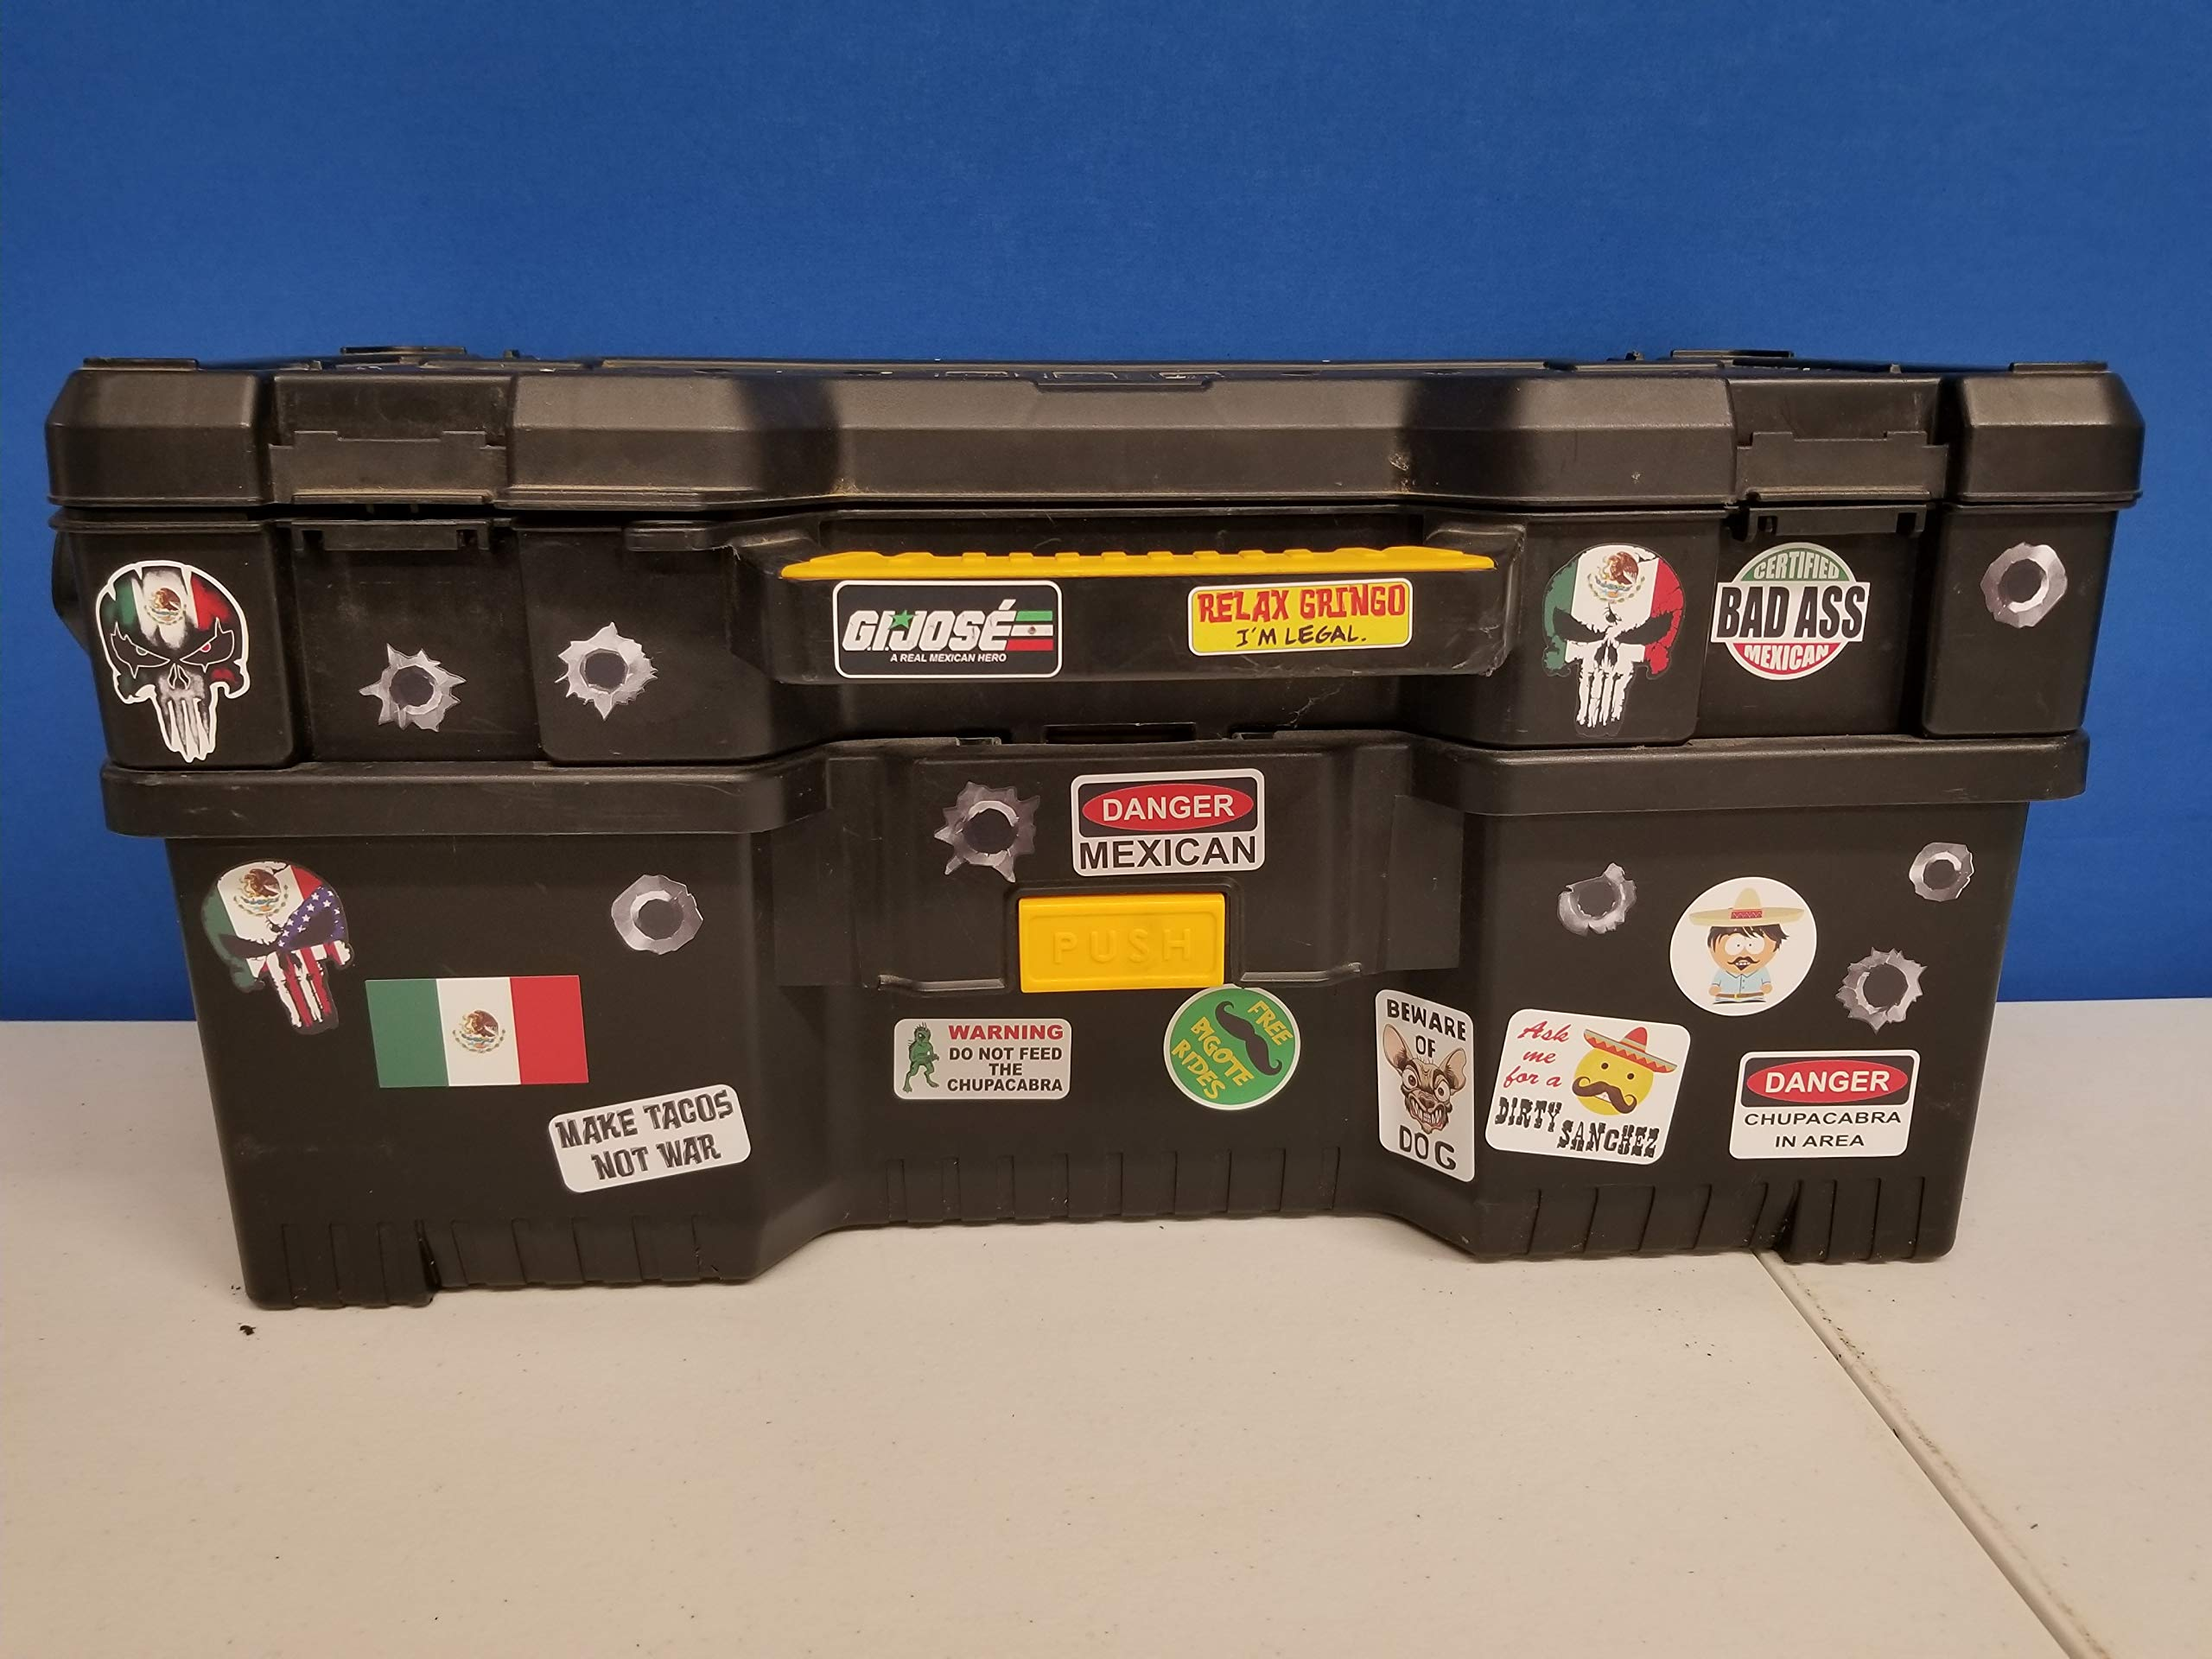 56 pack of Mexican American Edition Crude Humor Hilarious Hard Hat Prank Decal Joke Sticker Funny Laugh Construction LOL by Decals by Haley (Image #7)